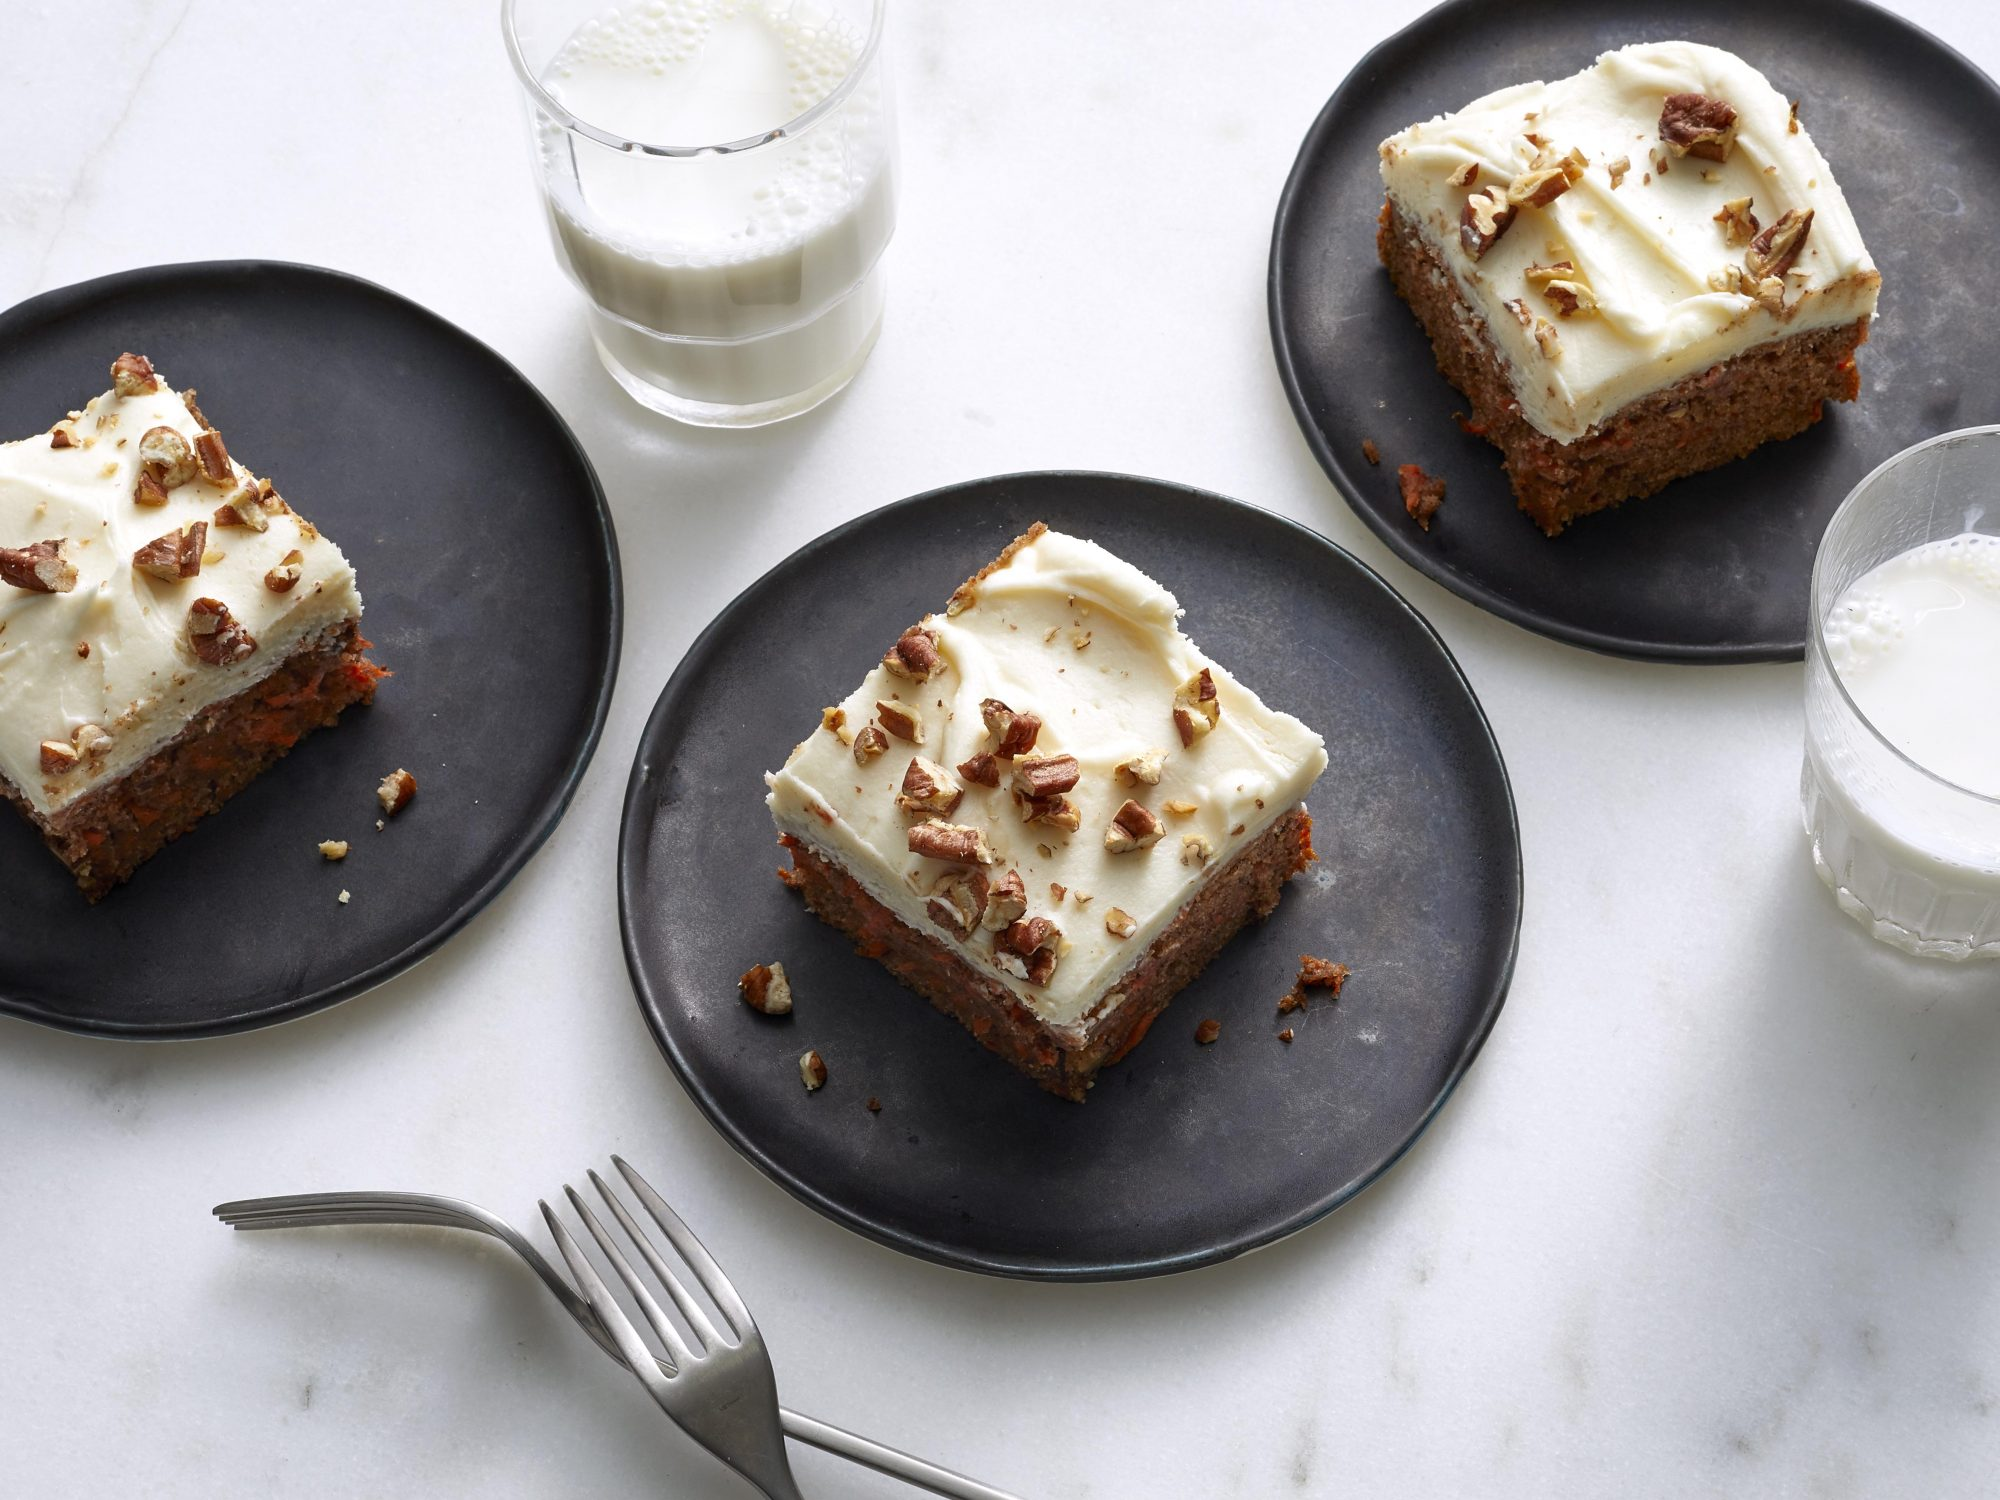 Carrot-Almond Snack Cake with Cream Cheese Frosting